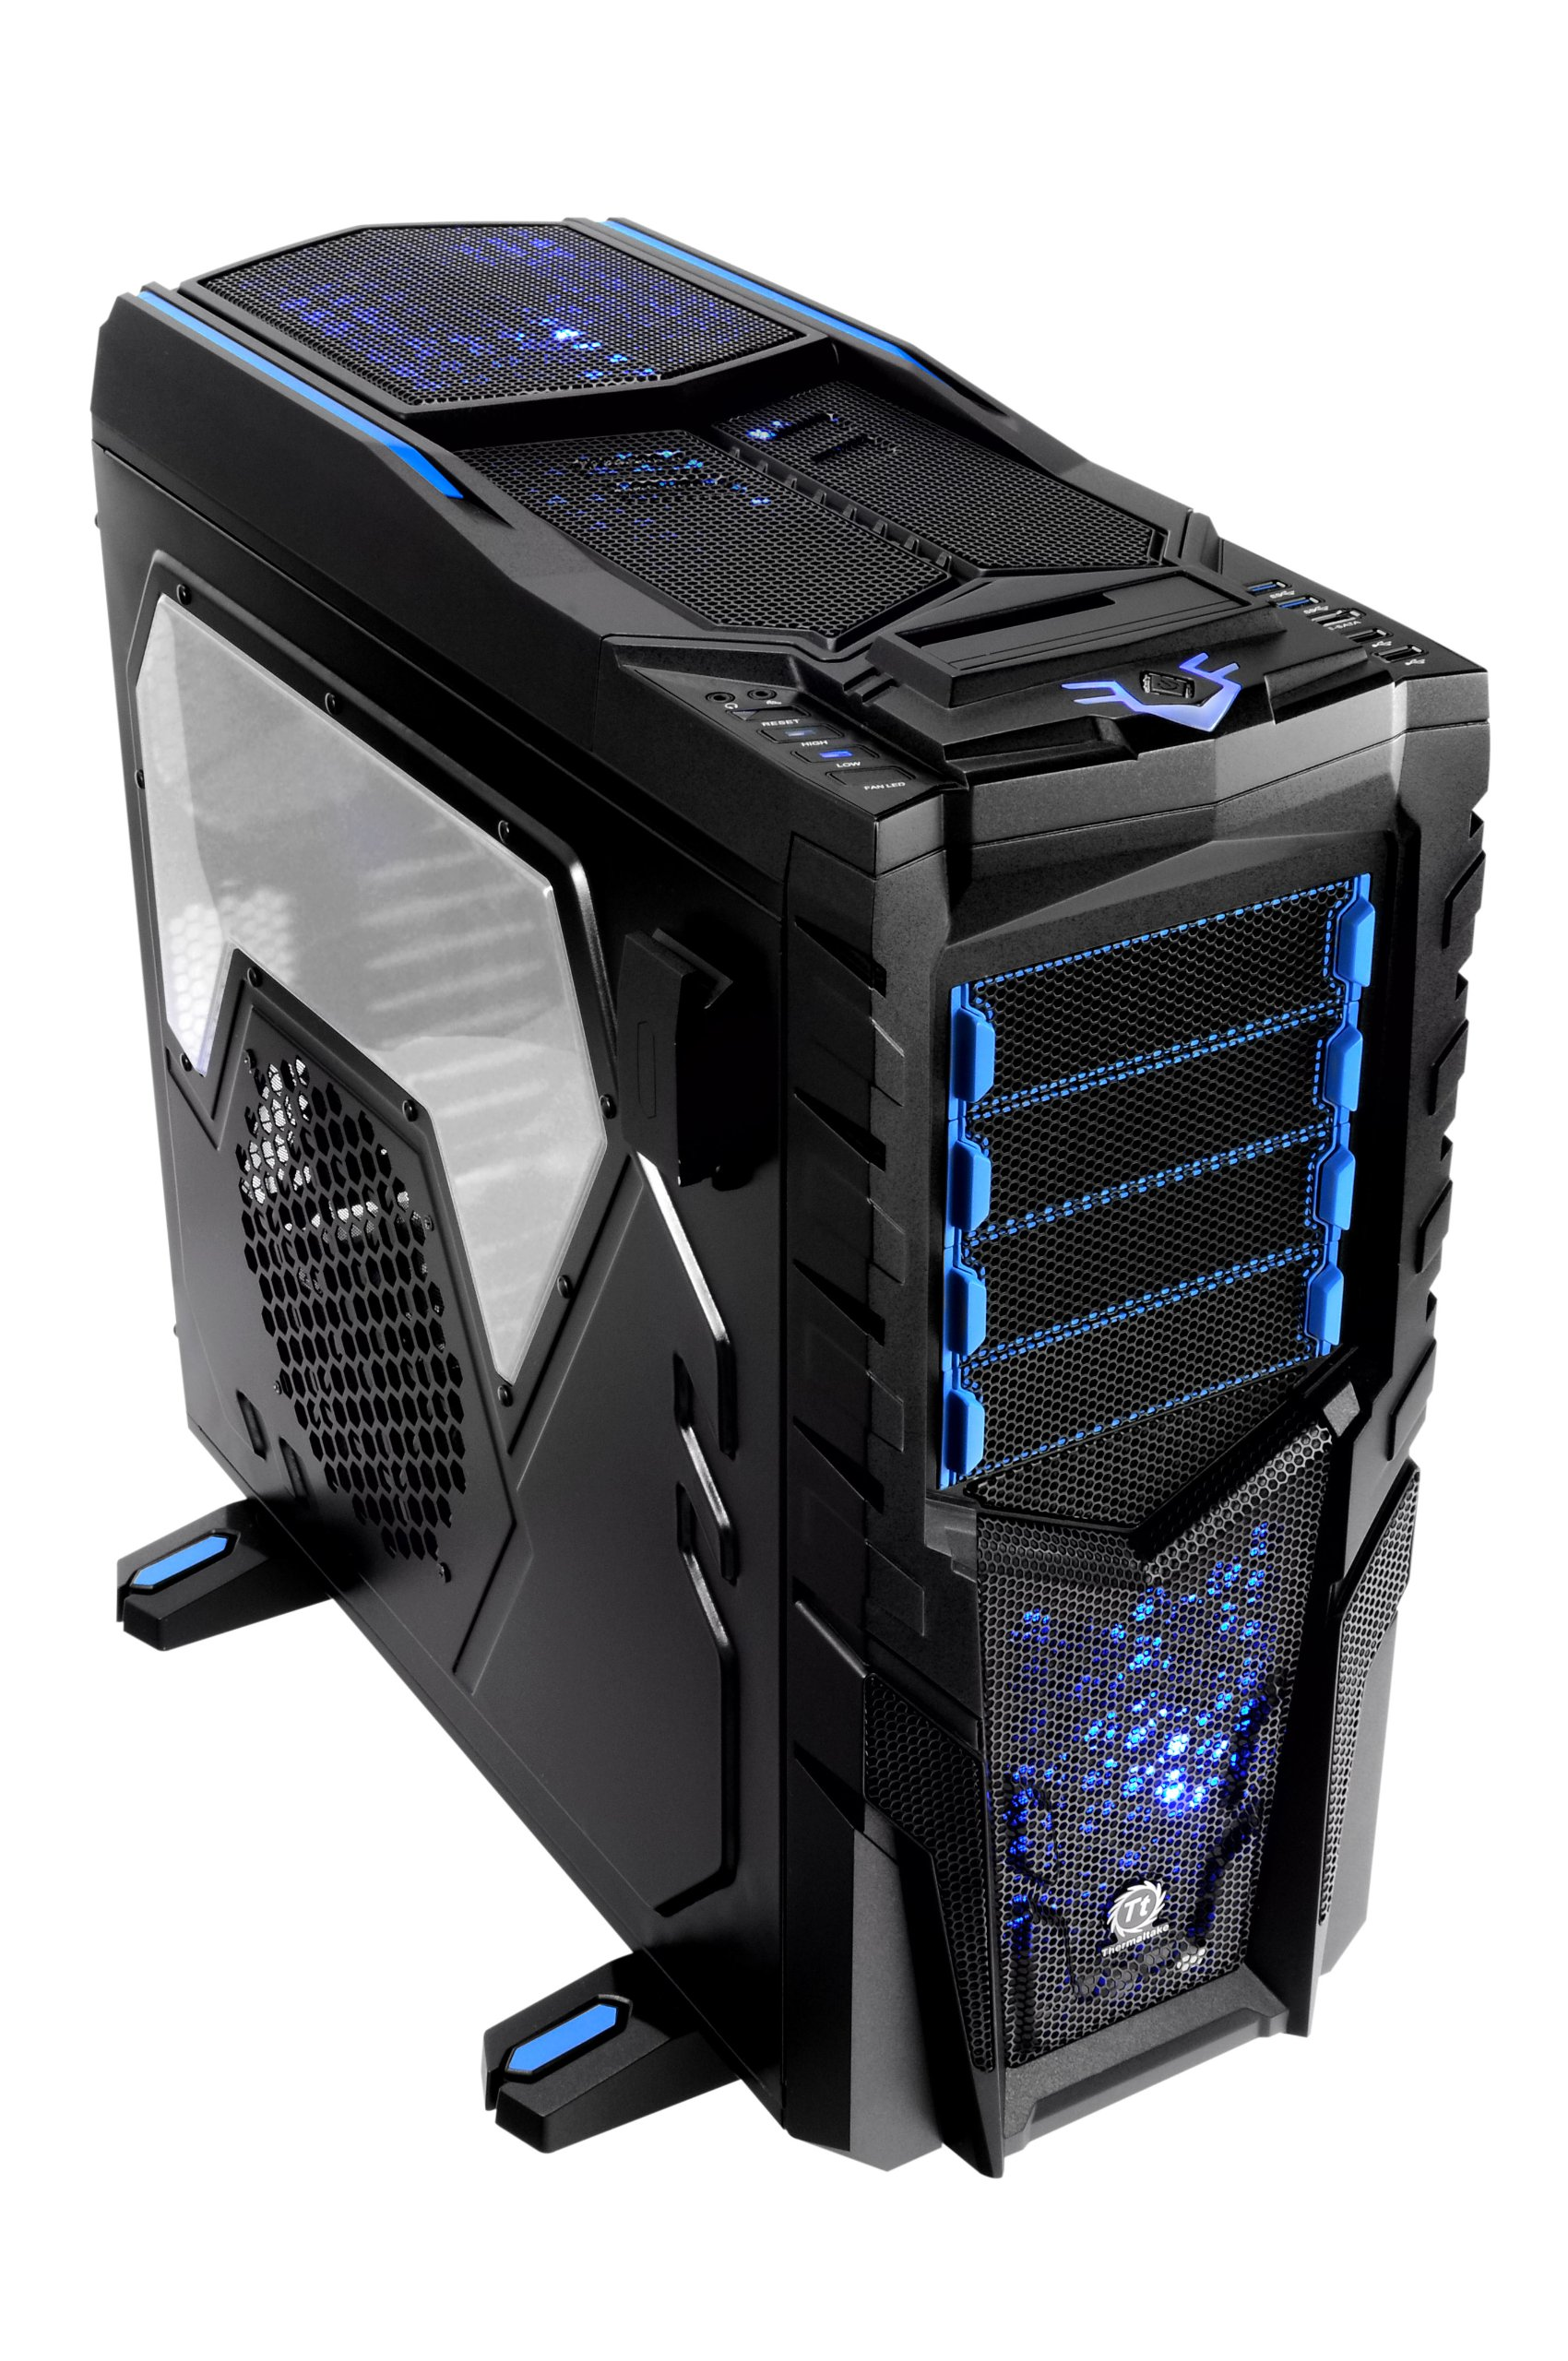 Thermaltake Chaser MK-1 Build-In HDD/SSD Hot Swap Color Shift LED Fan ATX Full Tower Gaming Computer Chasis VN300M1W2N